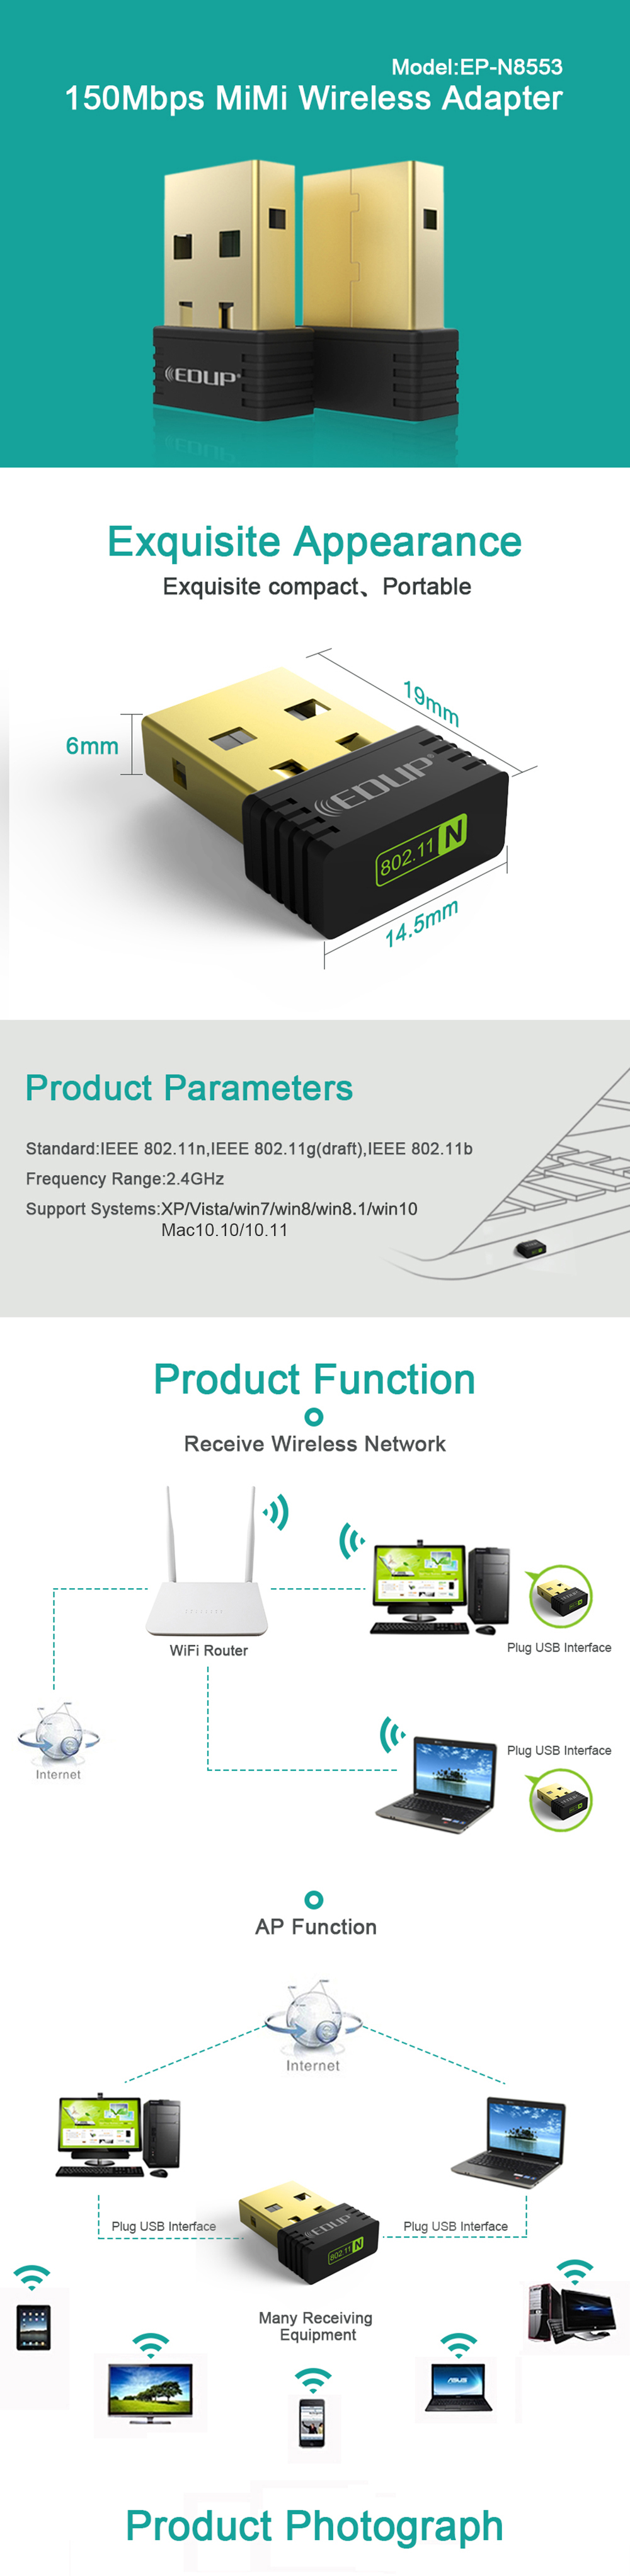 IsMyStore: EDUP mini usb wireless wifi adapter 150mbps wi-fi receiver 802.11n usb ethernet adapter network card Support Windows Mac for PC